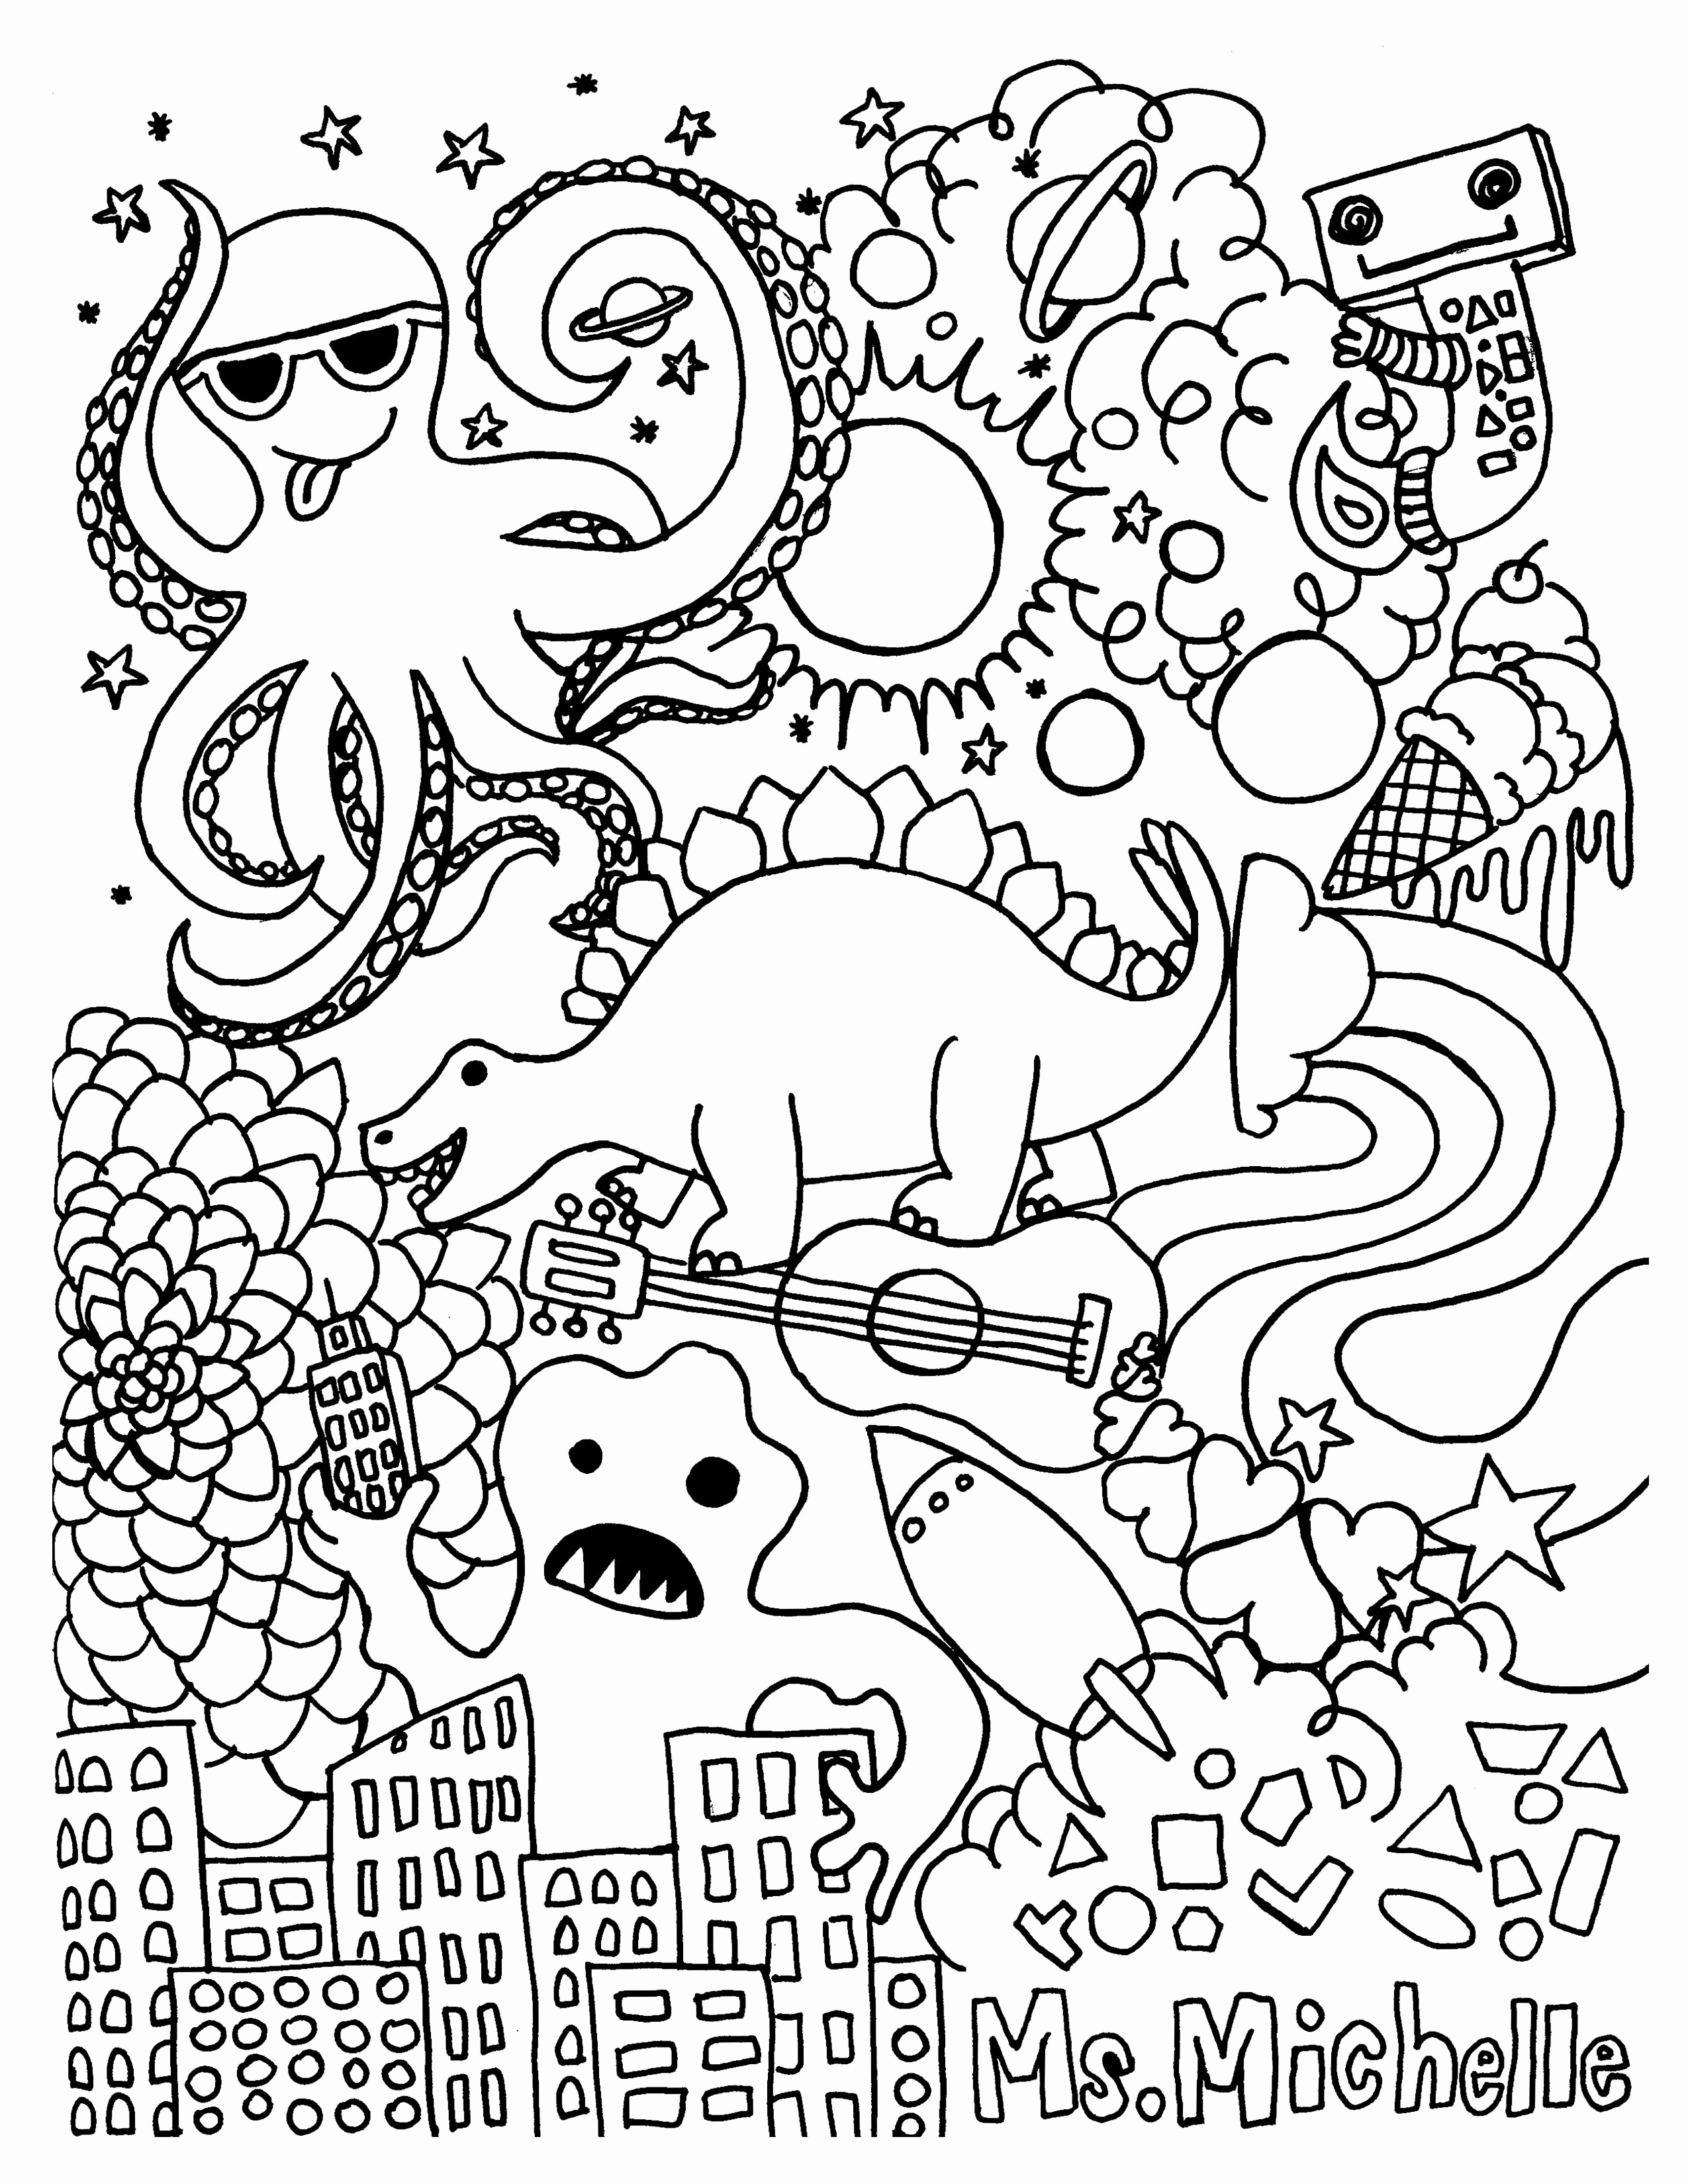 coloring worksheets for grade 3 3rd grade coloring pages free download on clipartmag 3 coloring for grade worksheets